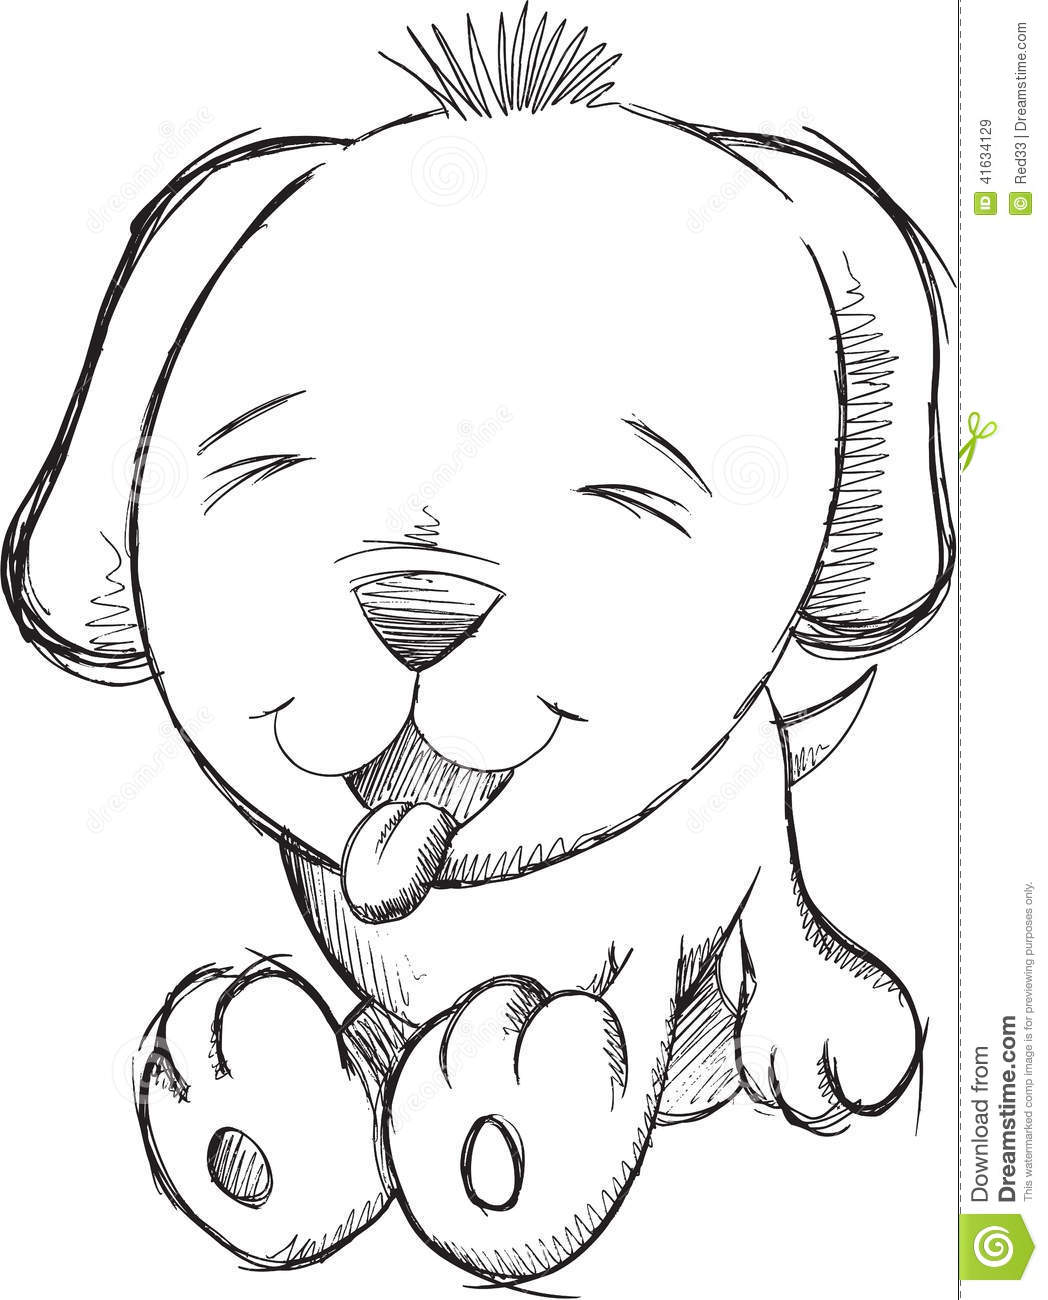 Cute Puppy Dog Doodle Sketch Vector Stock Vector